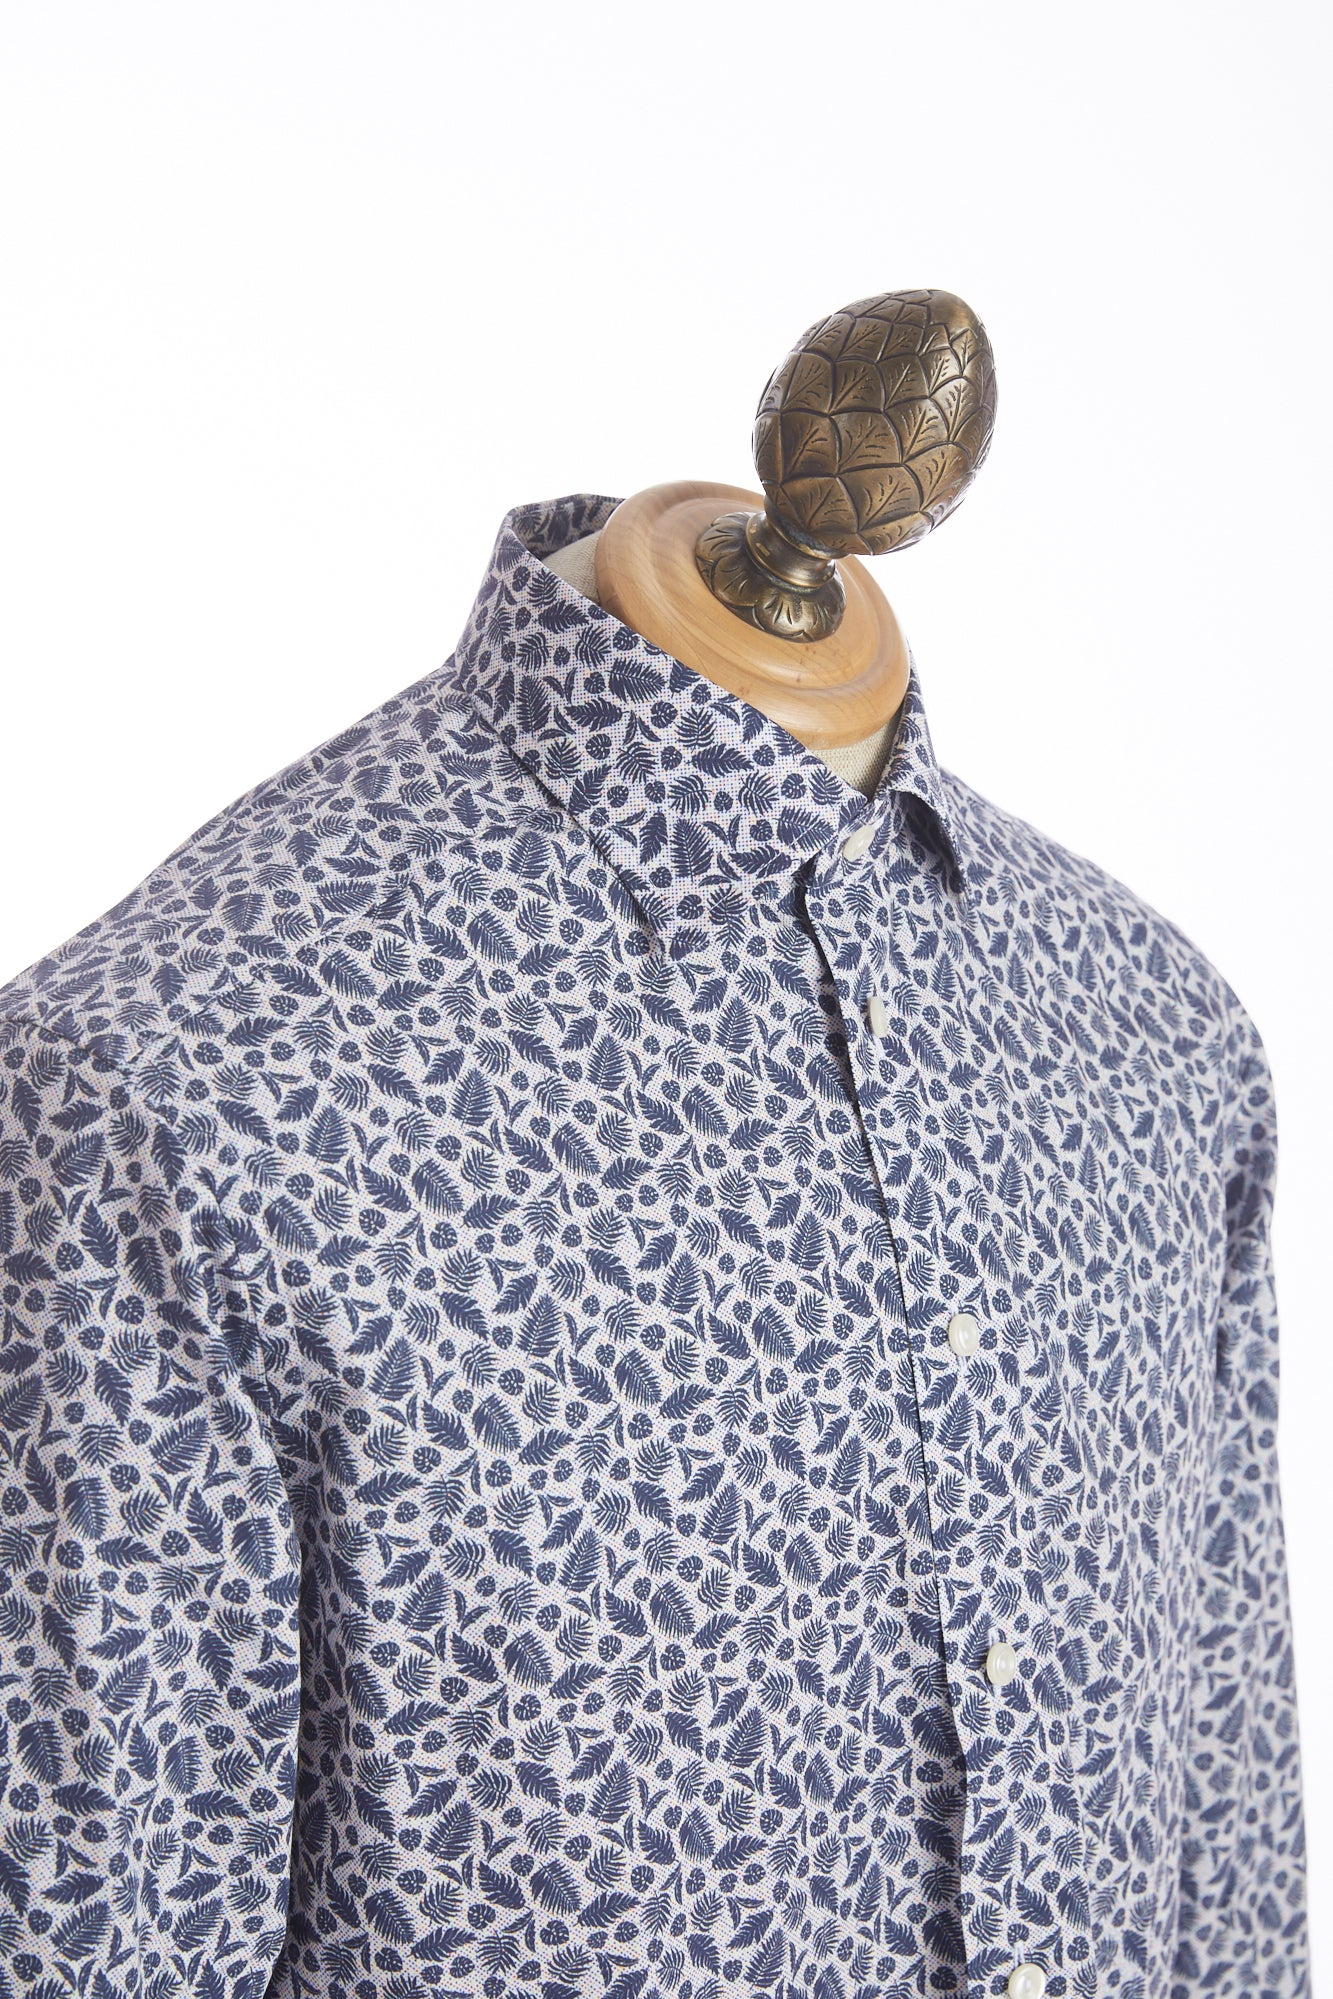 Eton Blue Palm Leaves Print Shirt - Shirts - Eton - LALONDE's